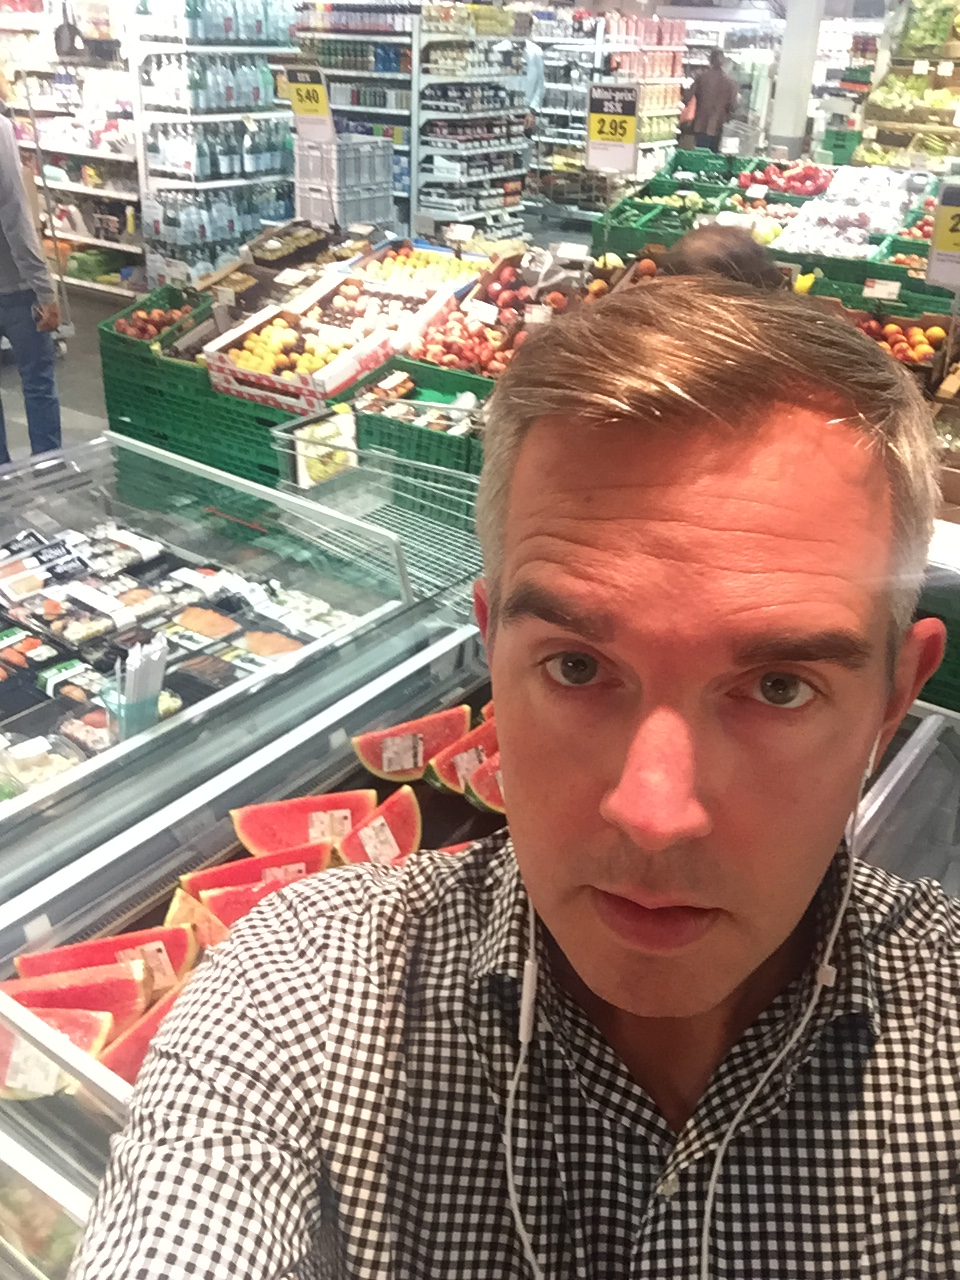 Ben listens in Geneva, Switzerland, while shopping for watermelon.